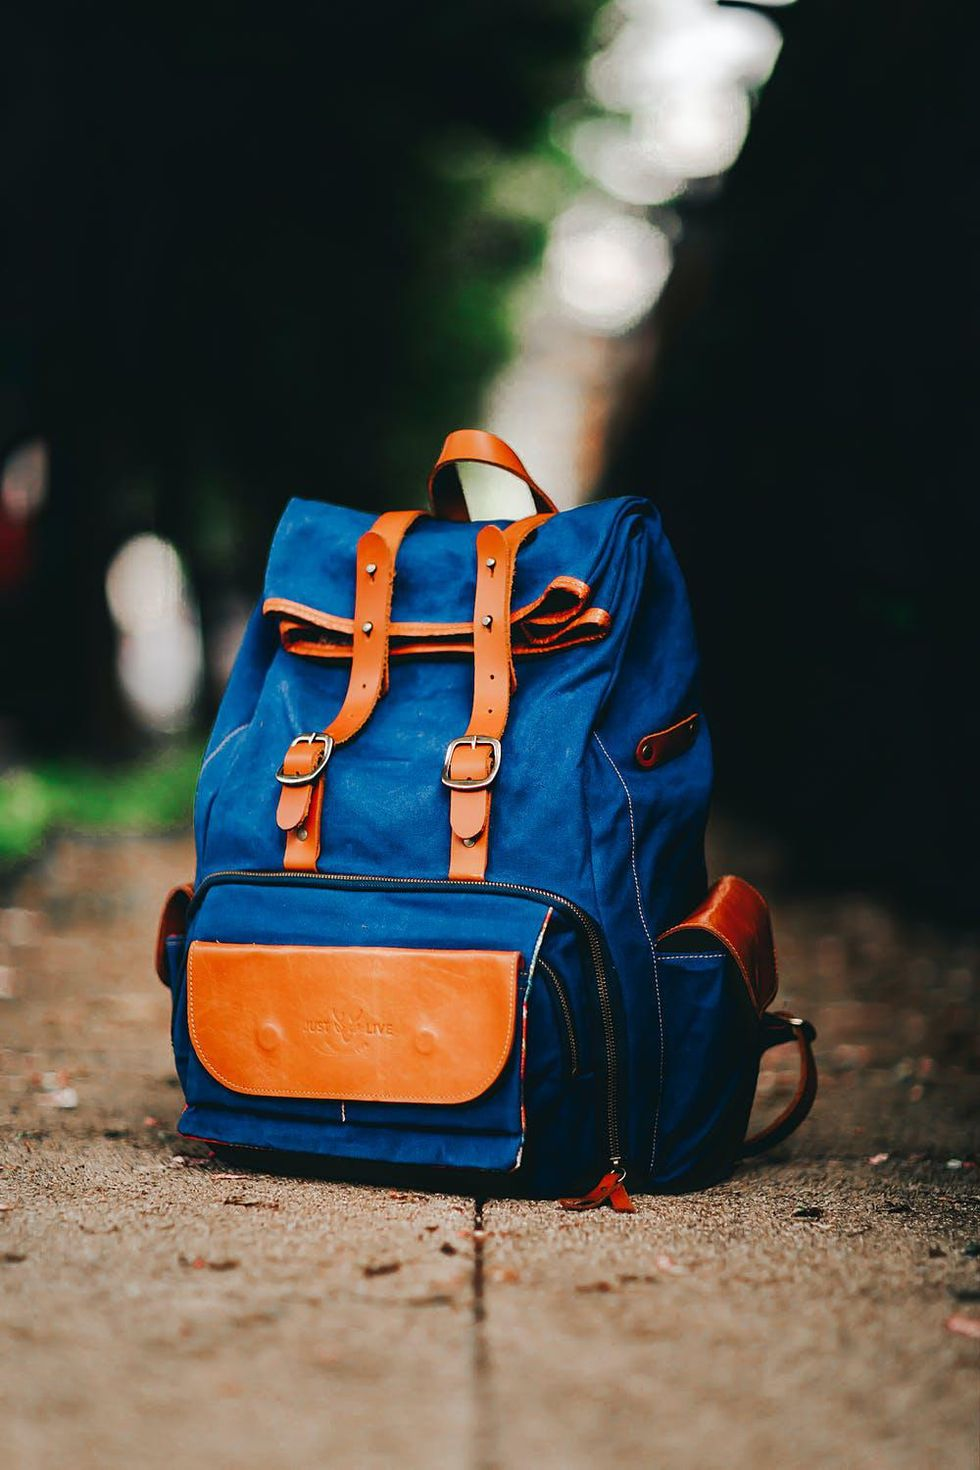 30 Necessities To Carry In Your School Bag — Besides Your Paper, Textbooks, And Pencils